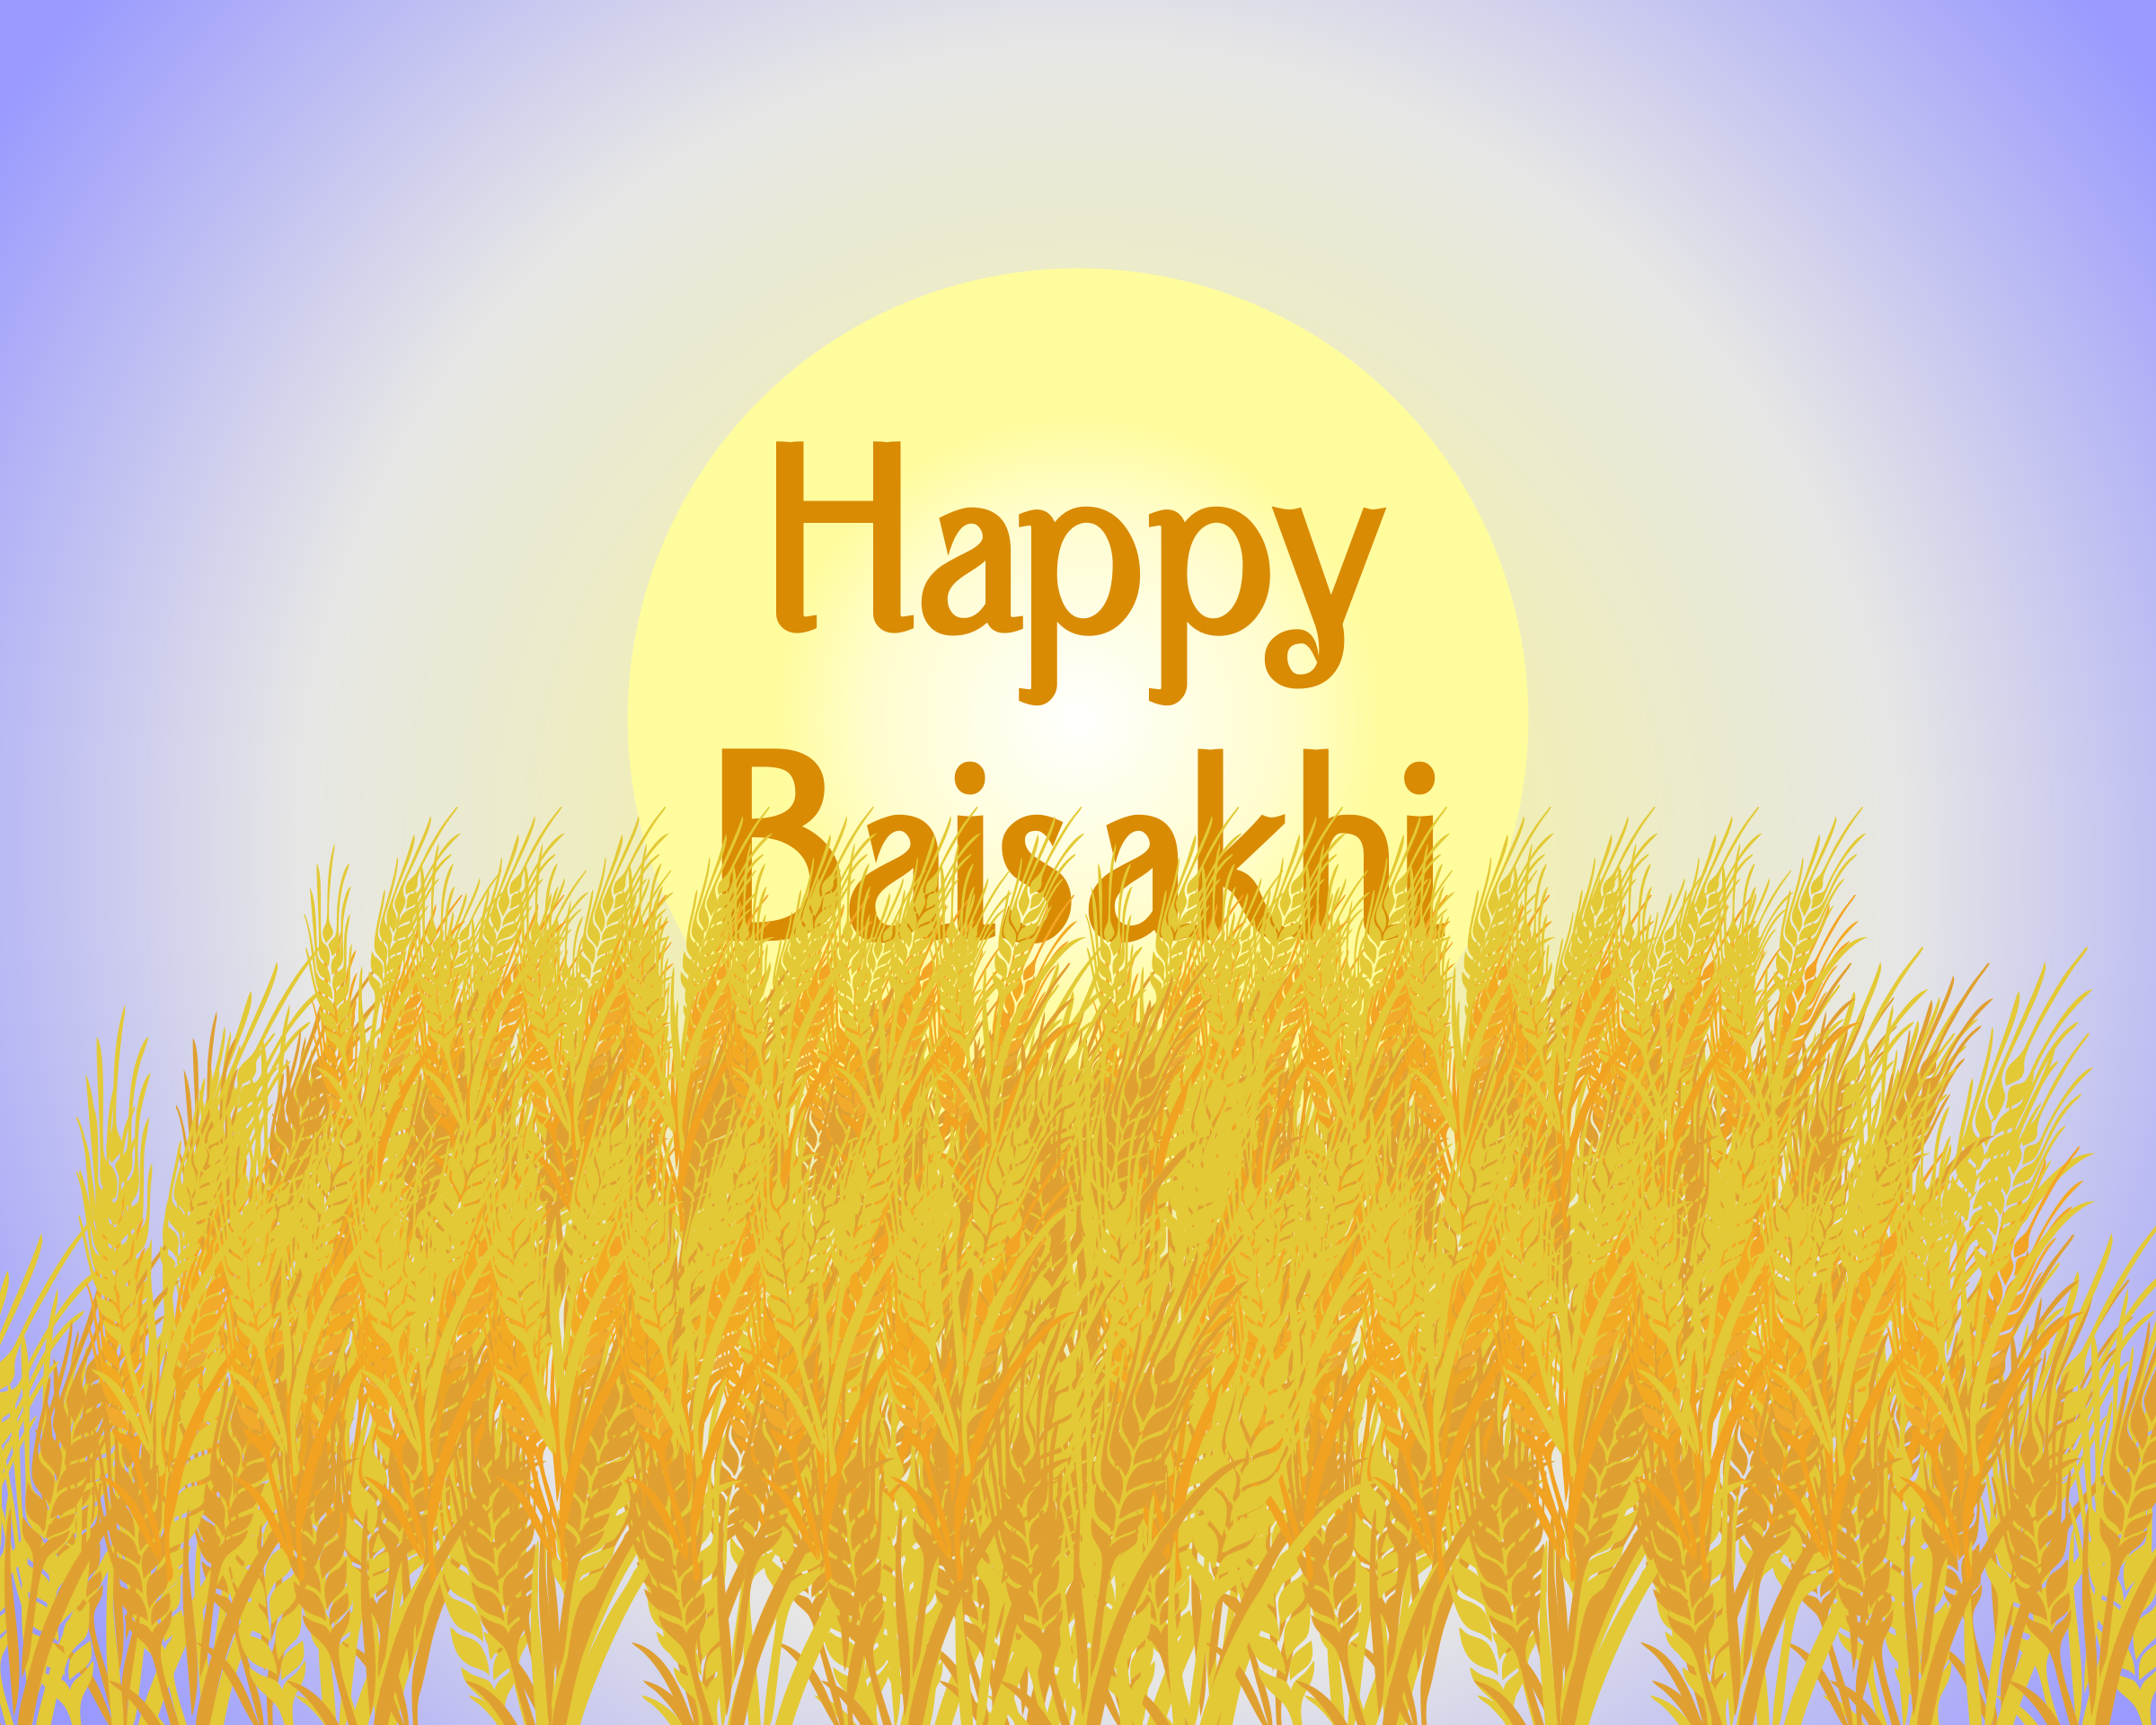 Happy Baisakhi by j4p4n